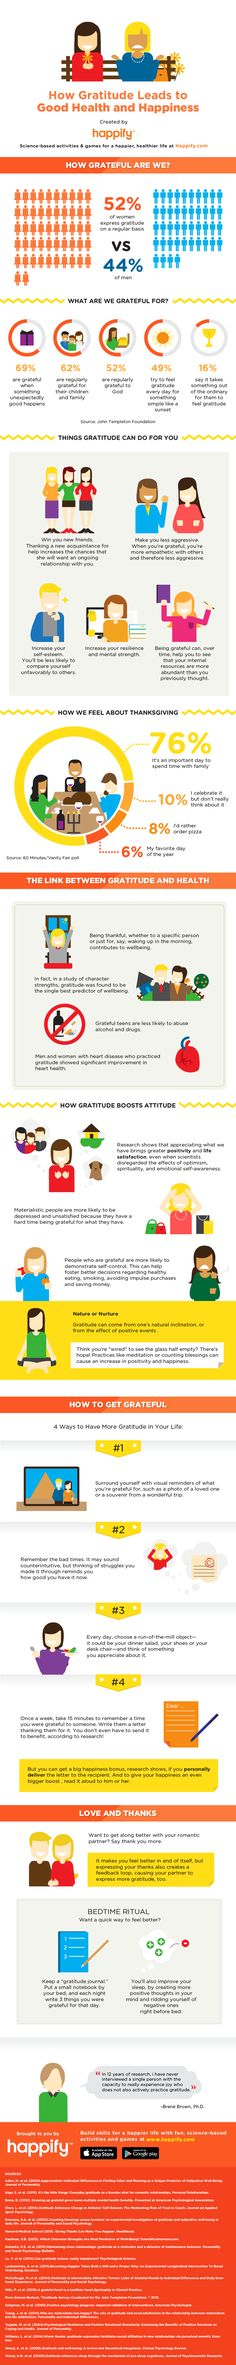 How gratitude leads to good health and happiness #infographic #Health #Gratitude